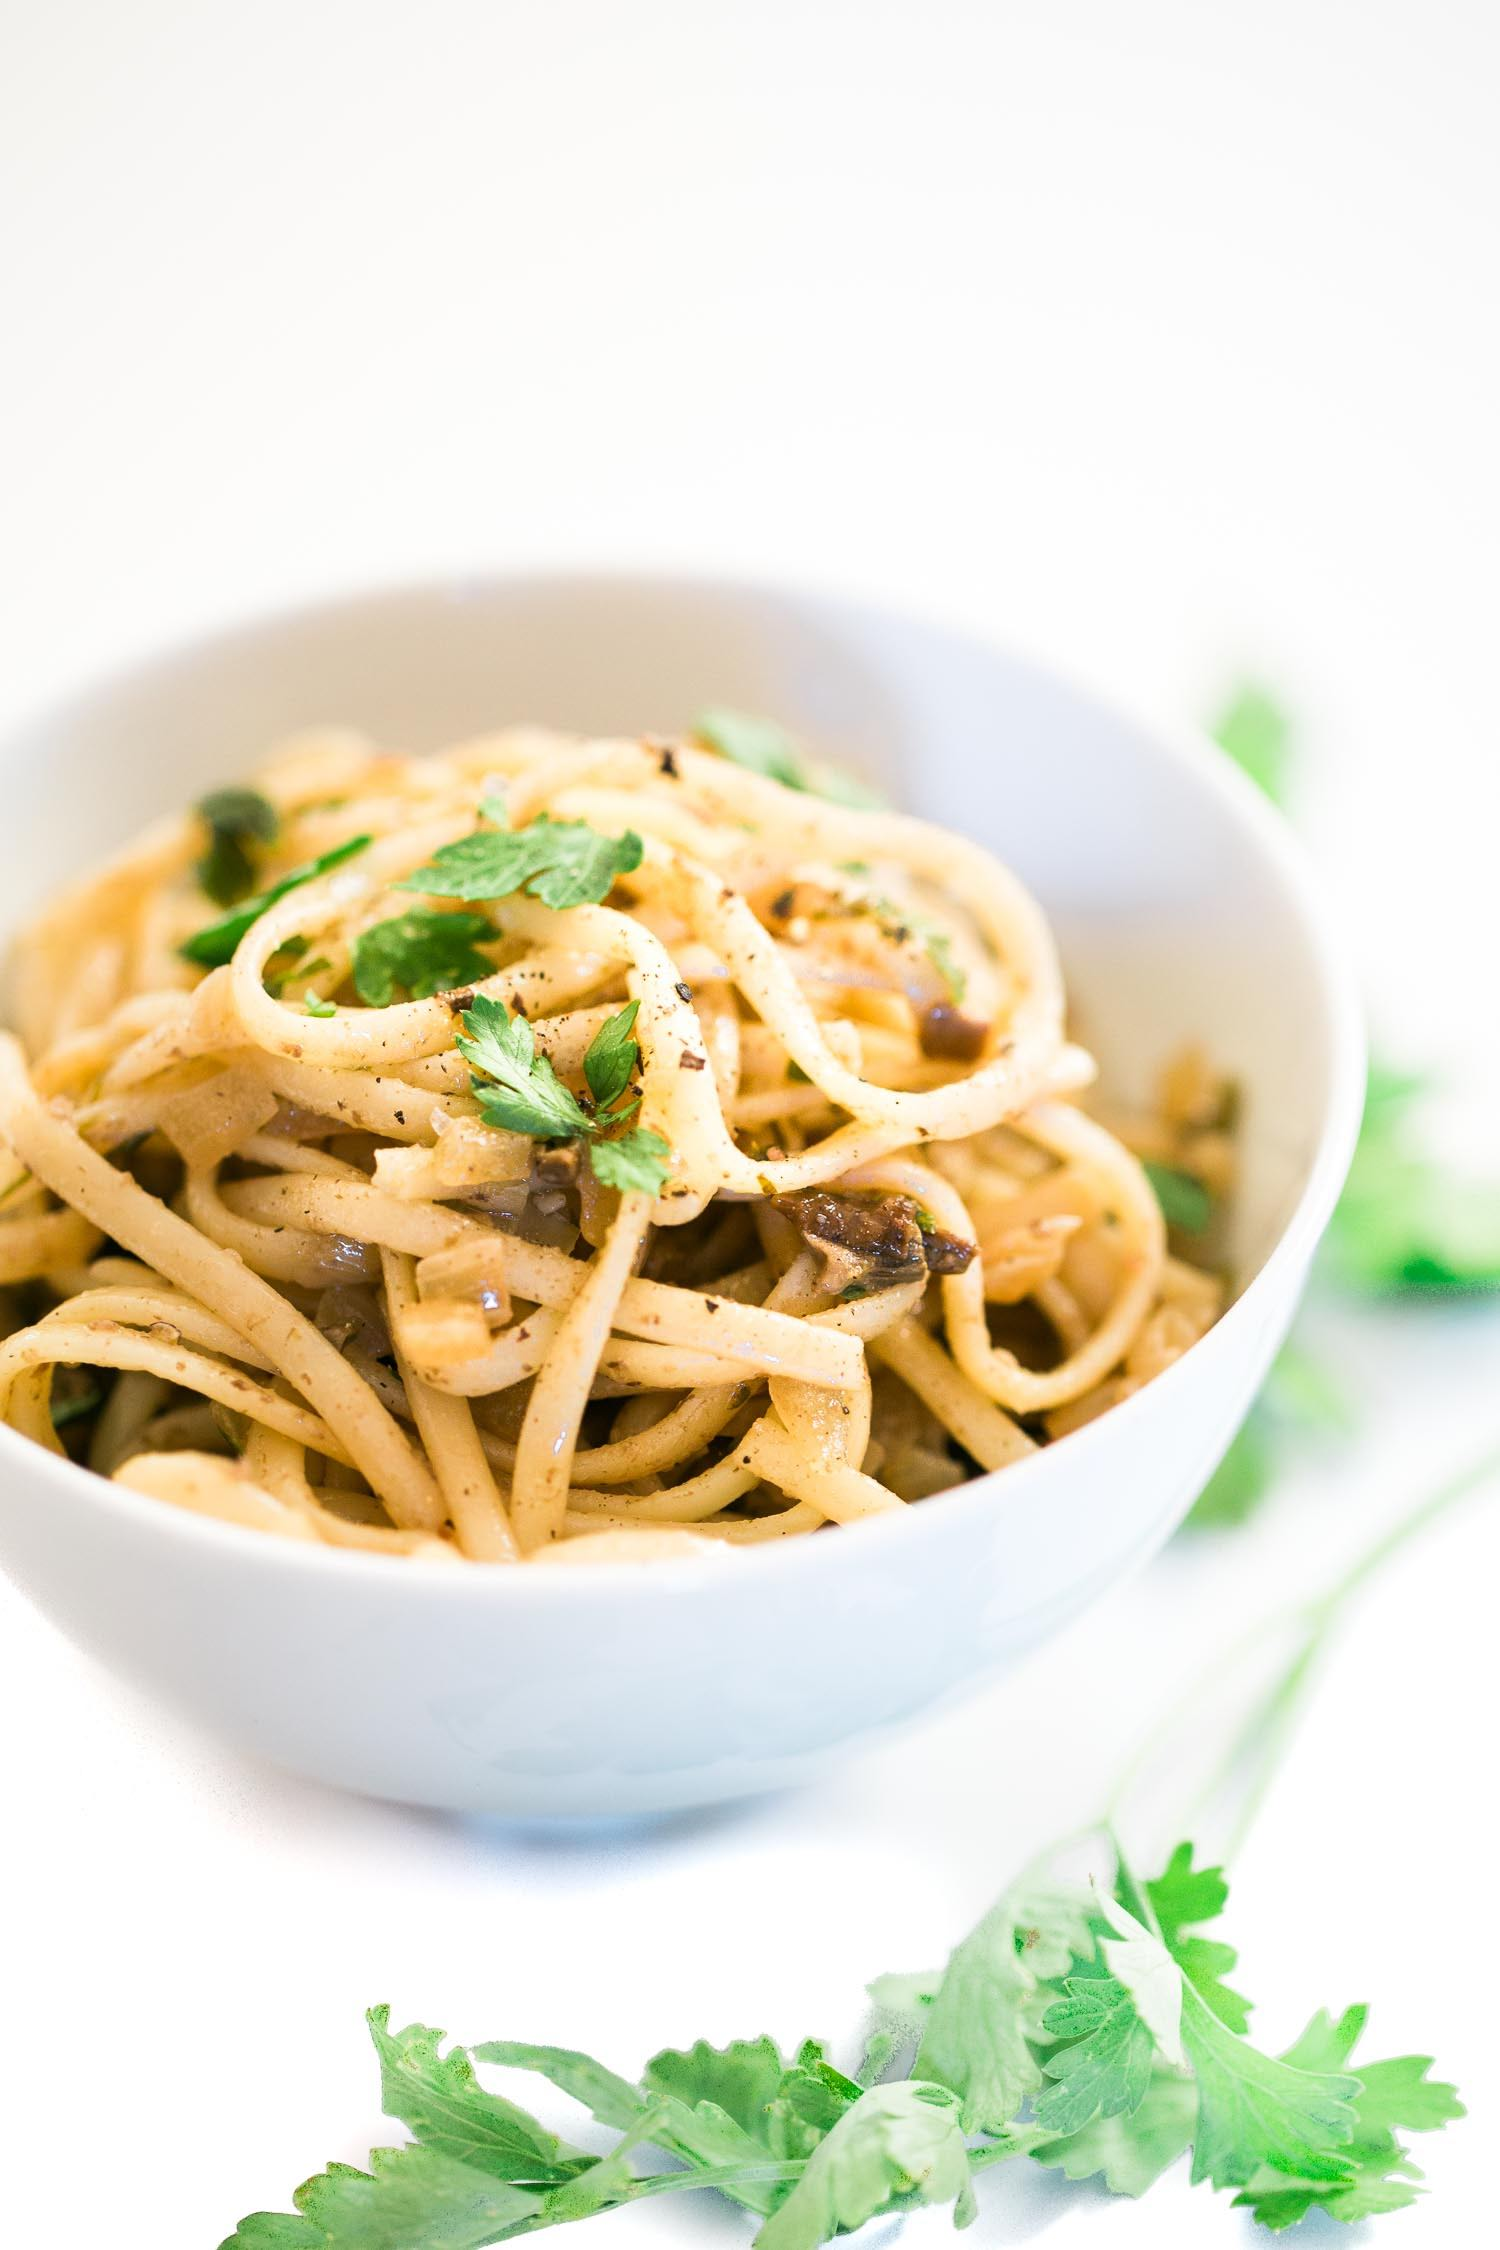 Linguine pasta recipe with Porcini Mushrooms, truffles, garlic and fresh parsley. Ready in 15 minutes. Bellissima!